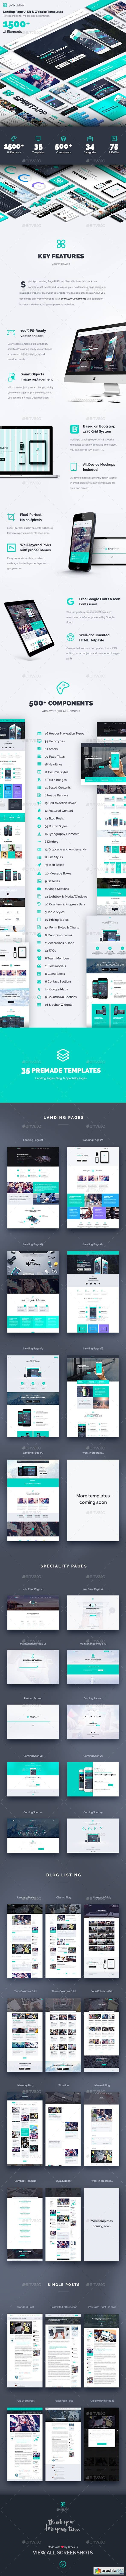 SpiritApp Landing Page UI Kit & Premade Templates (Light Style)